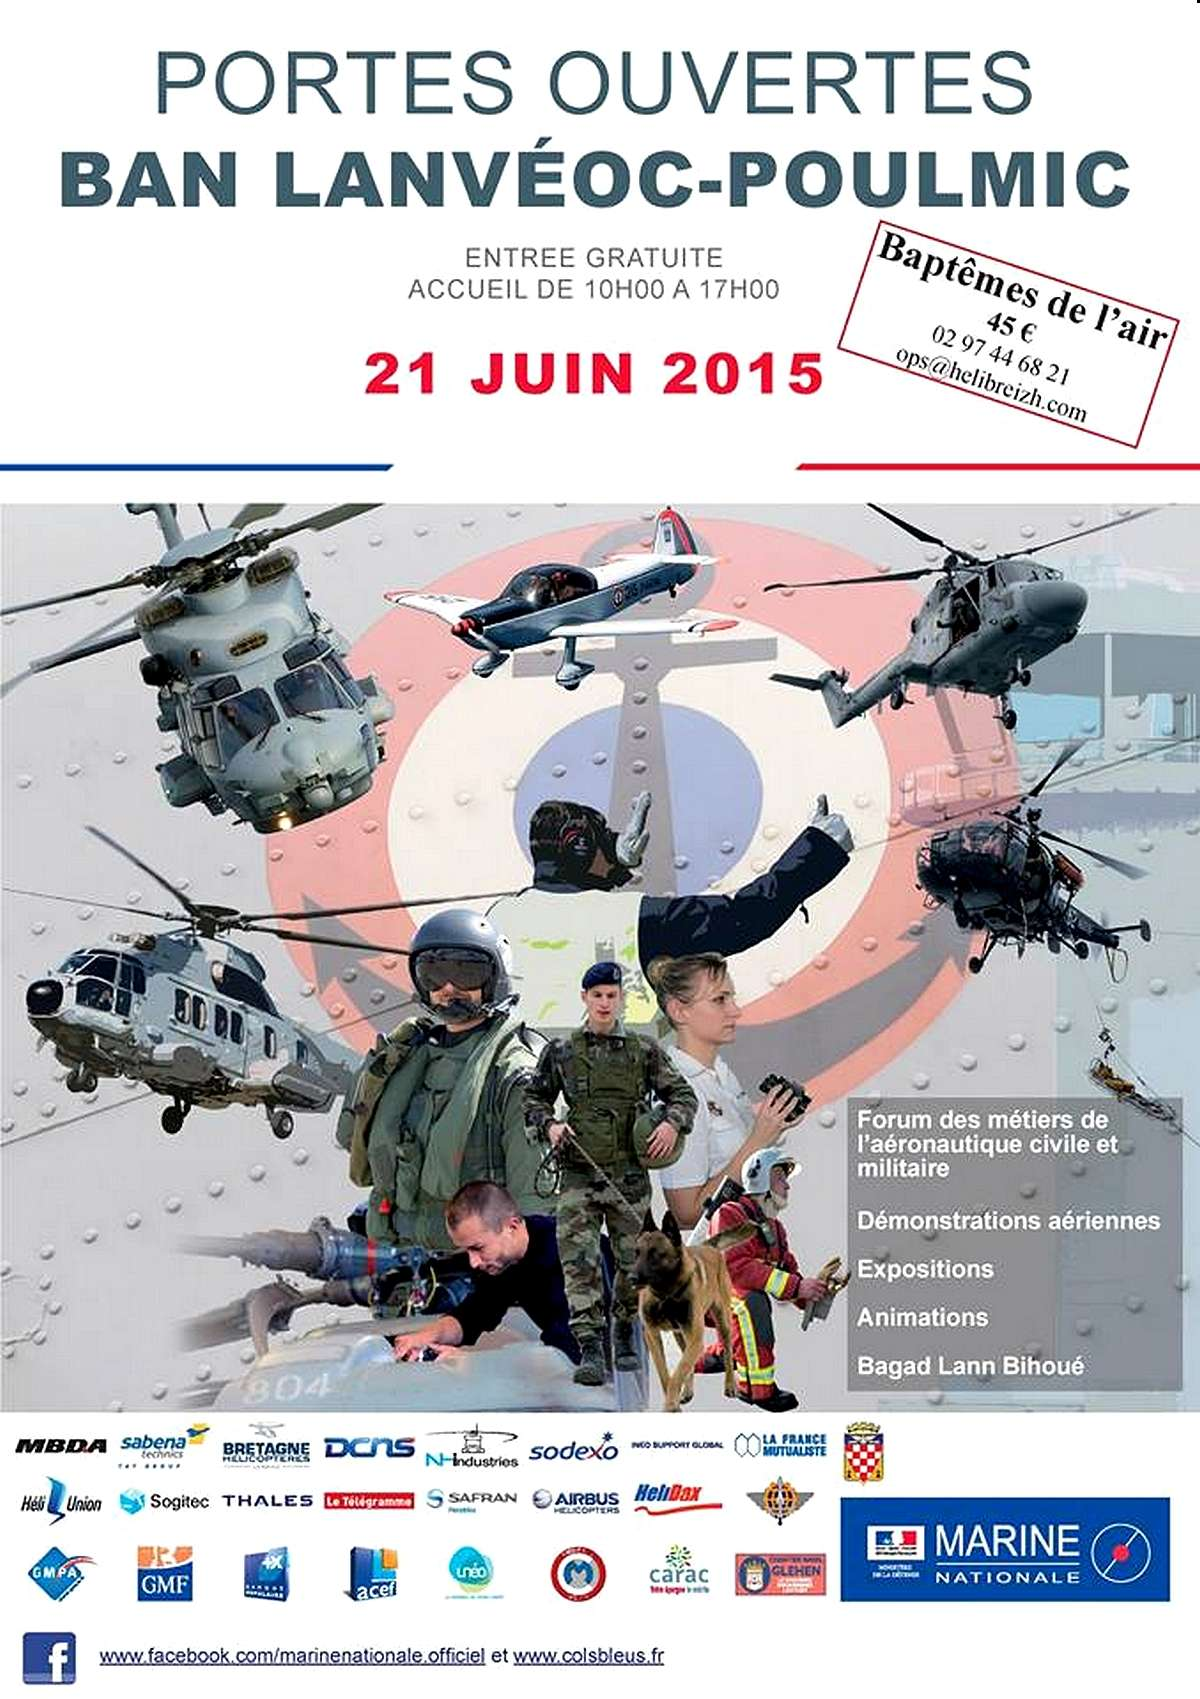 meeting aerien La Base Aéronavale BAN de Lanvéoc-Poulmic 2015,JPO BAN Lanvéoc-Poulmic 2015, meeting aériens 2015, meeting aeriens 2015,Marine national, French Airshow 2015